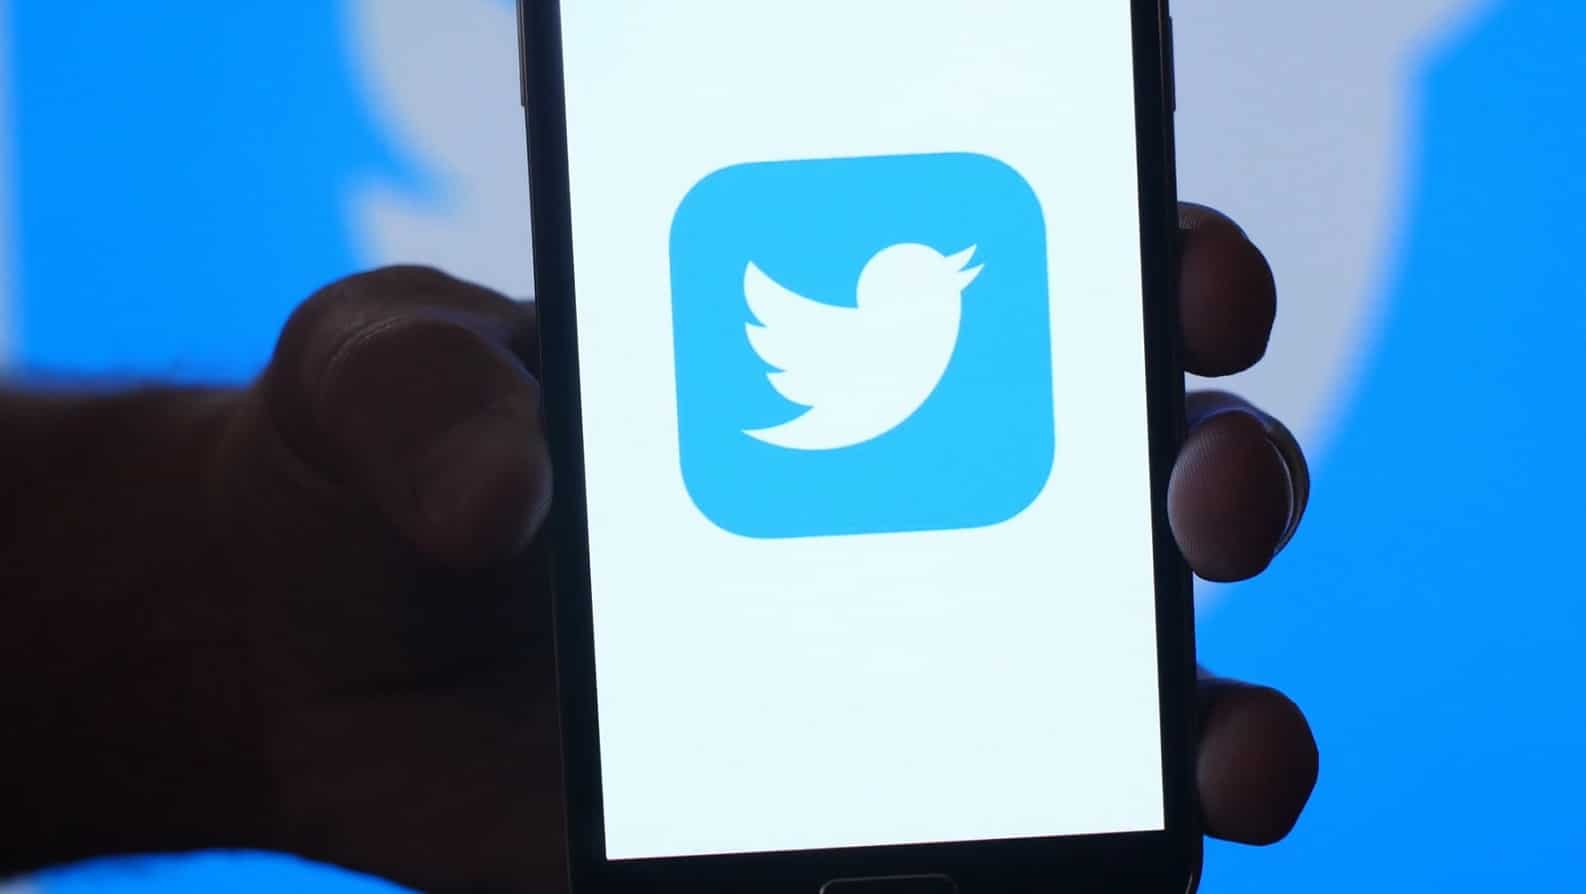 twitter being shown on phone screen for bots